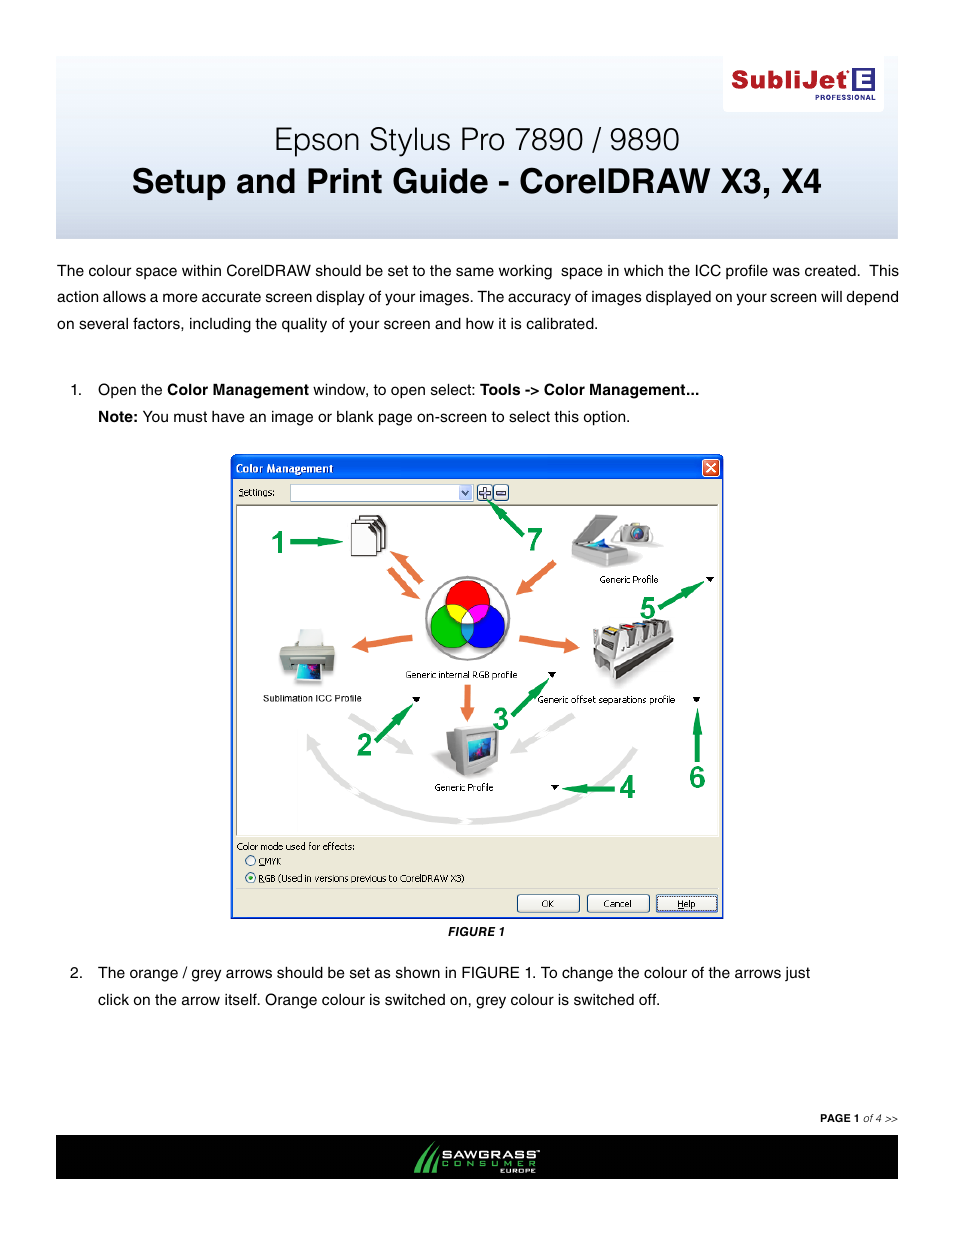 Xpres SubliJet E Epson Stylus Pro 9890 (Windows ICC Profile Setup): Print &  Setup Guide CorelDRAW X3 - X4 User Manual | 3 pages | Also for: SubliJet E  Epson ...